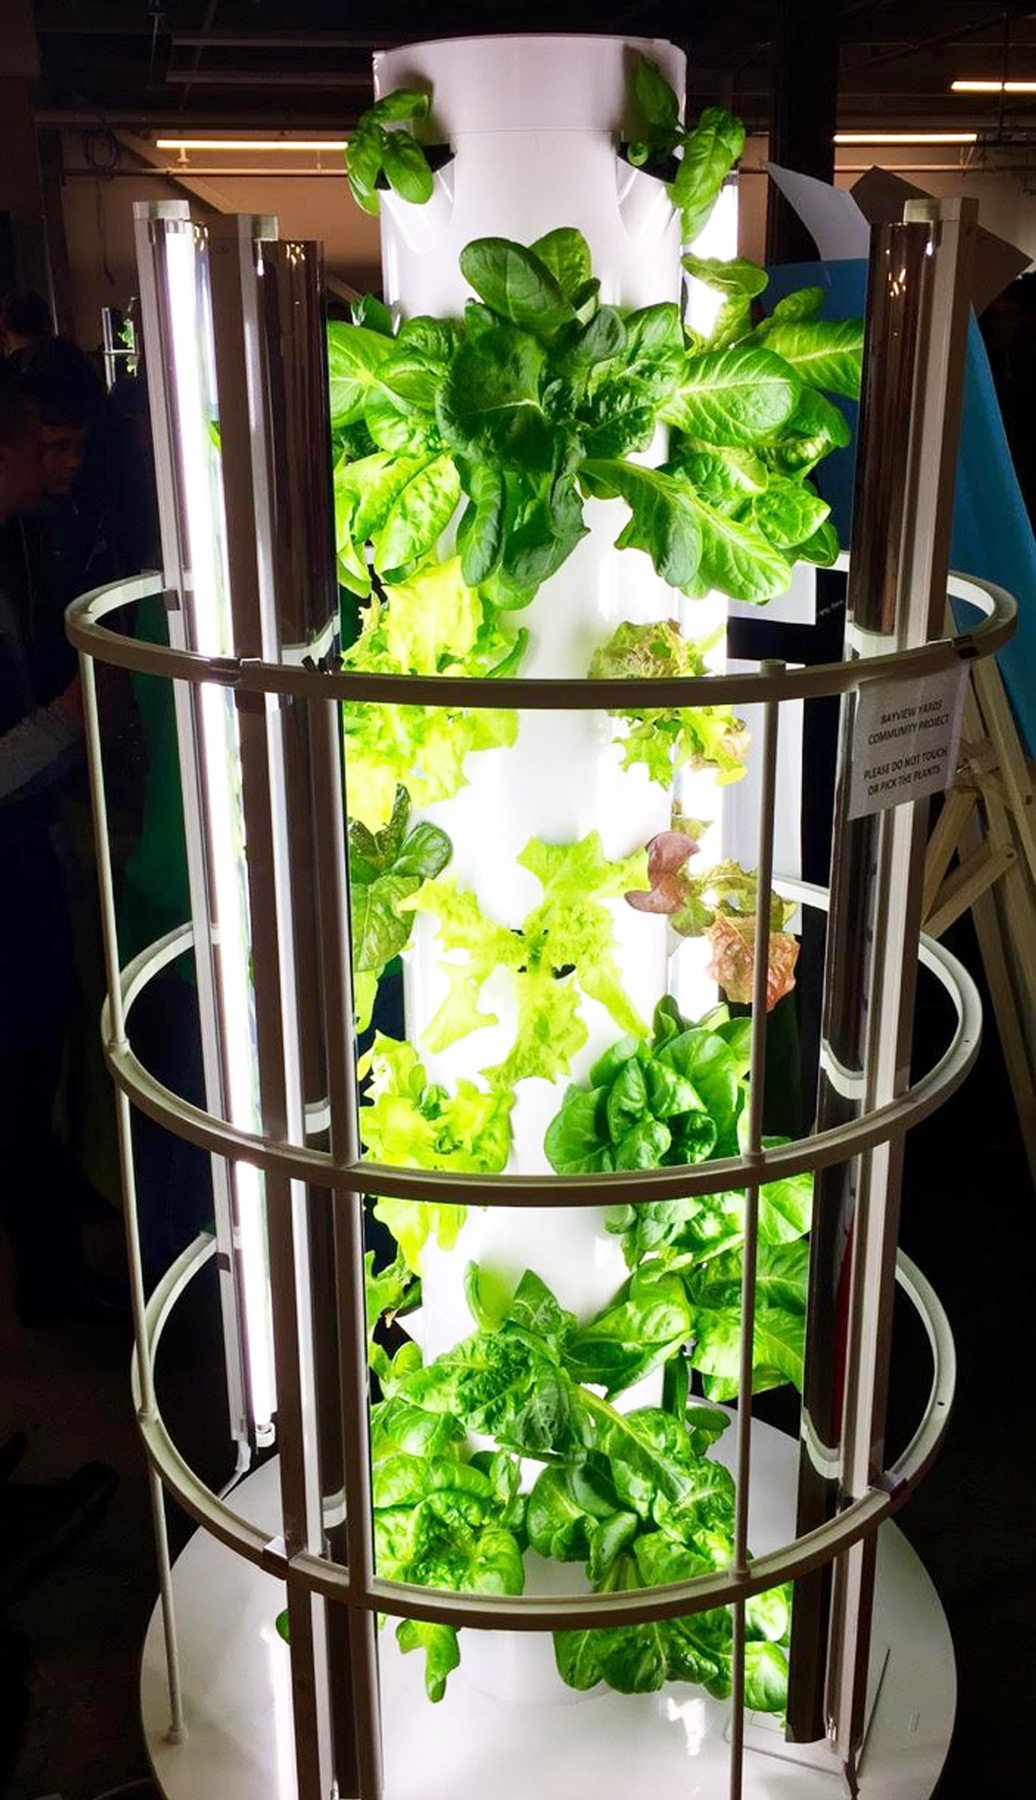 Replacing the water cooler — the Garden Tower, a vertical hydroponic, vegetable-growing structure